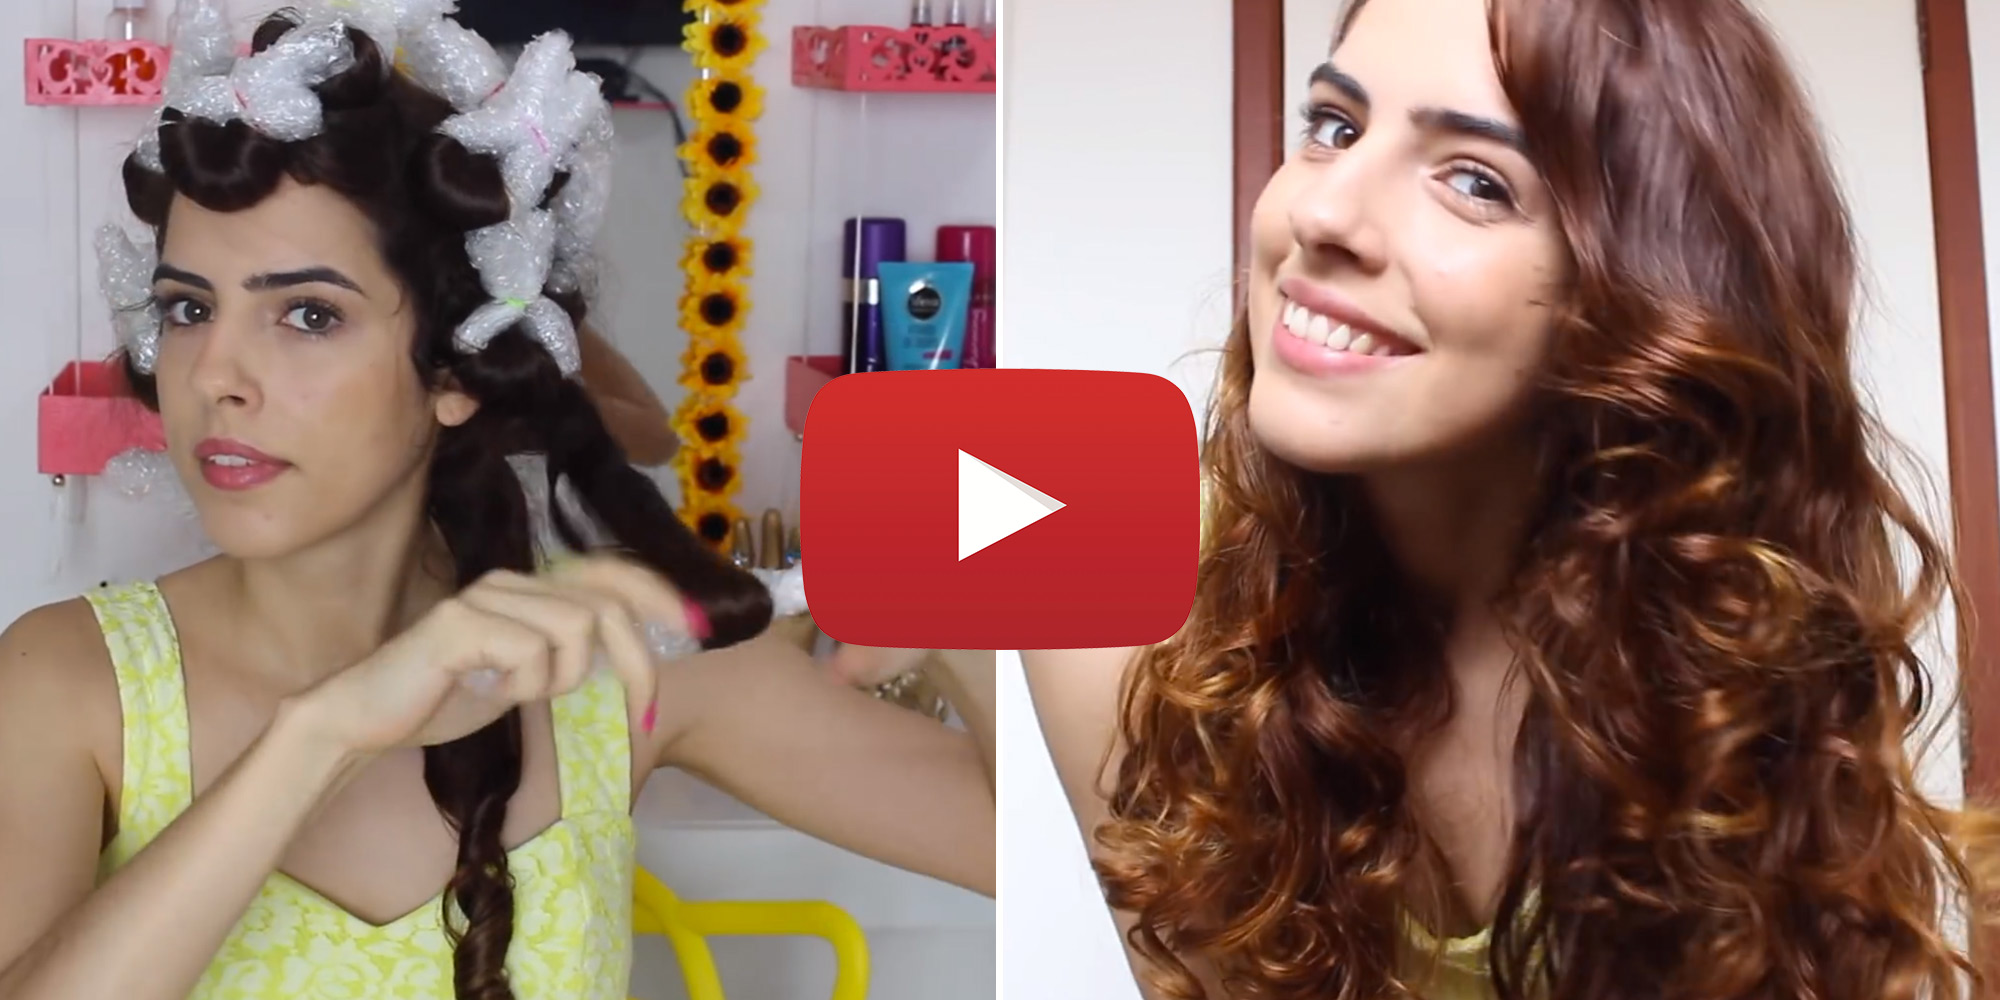 Hacks for Curling Your Hair - How to Curl Your Hair With Bubble Wrap